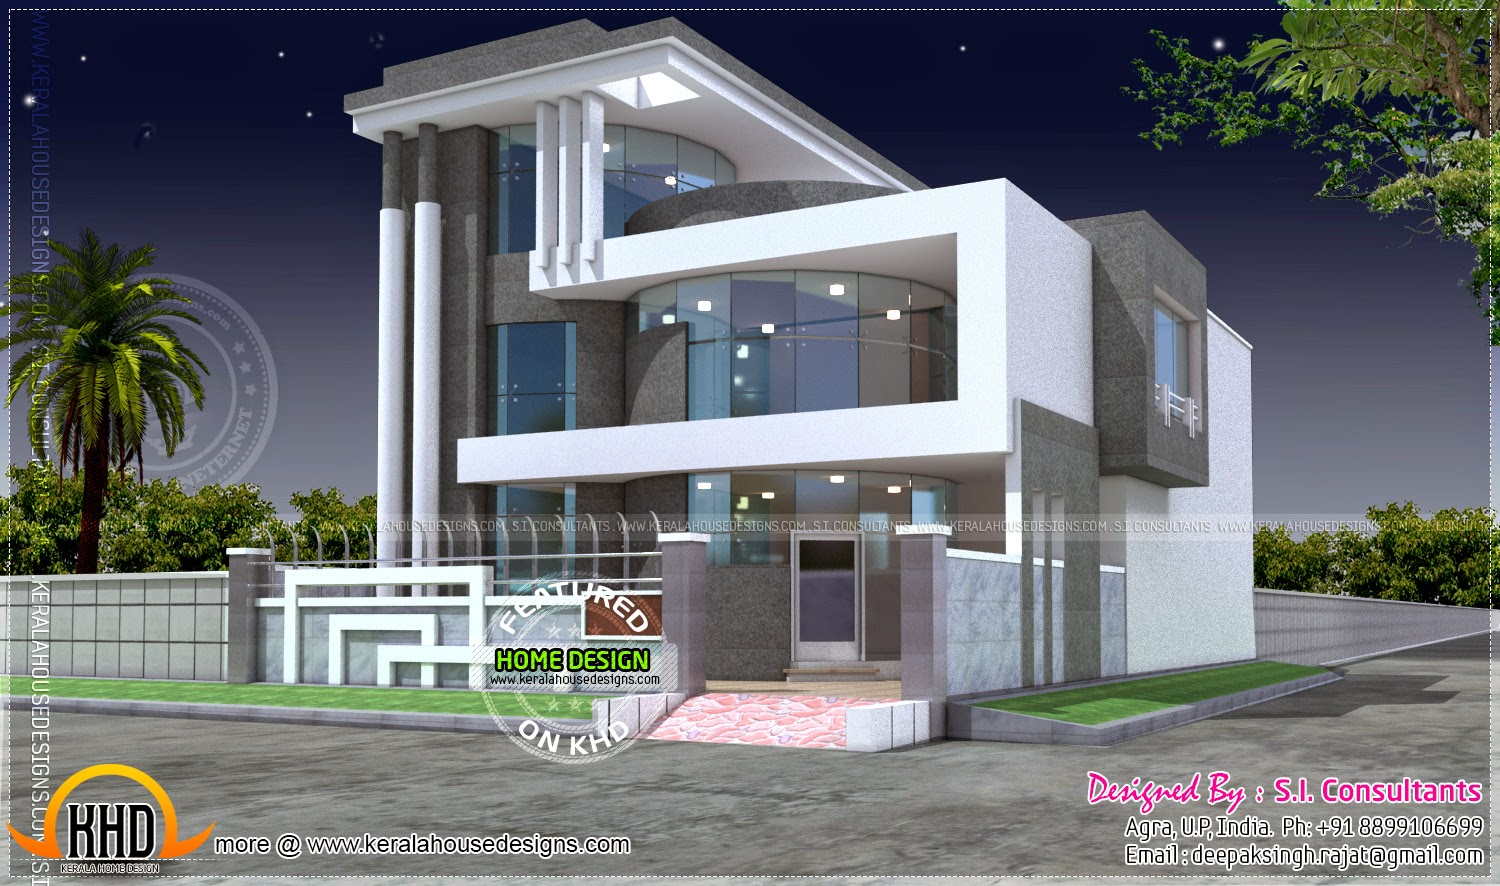 Unique luxury home design kerala home design and floor plans for Unusual home plans